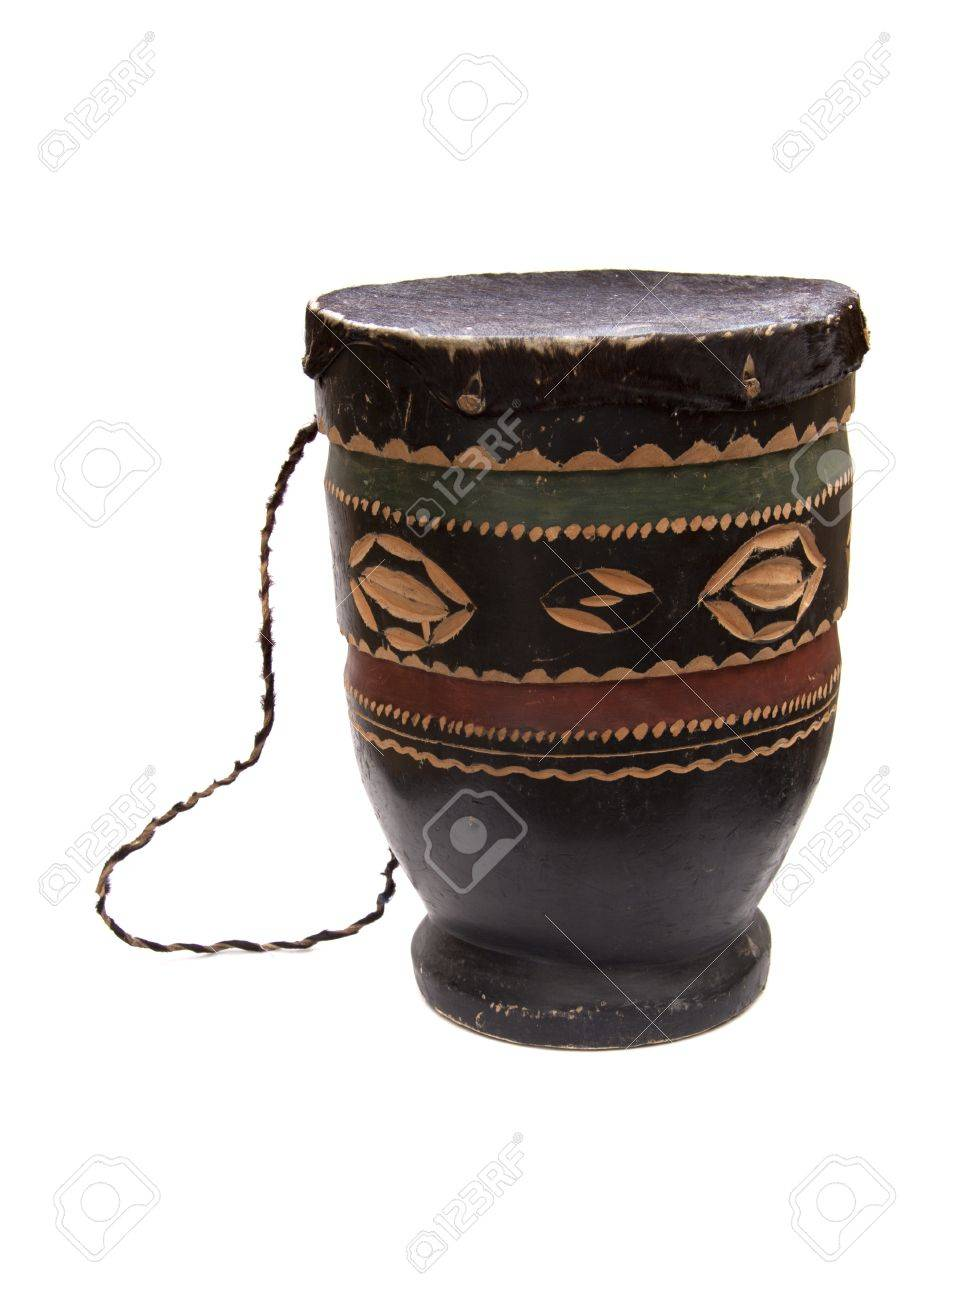 Handmade African drum on a white background. - 8319143